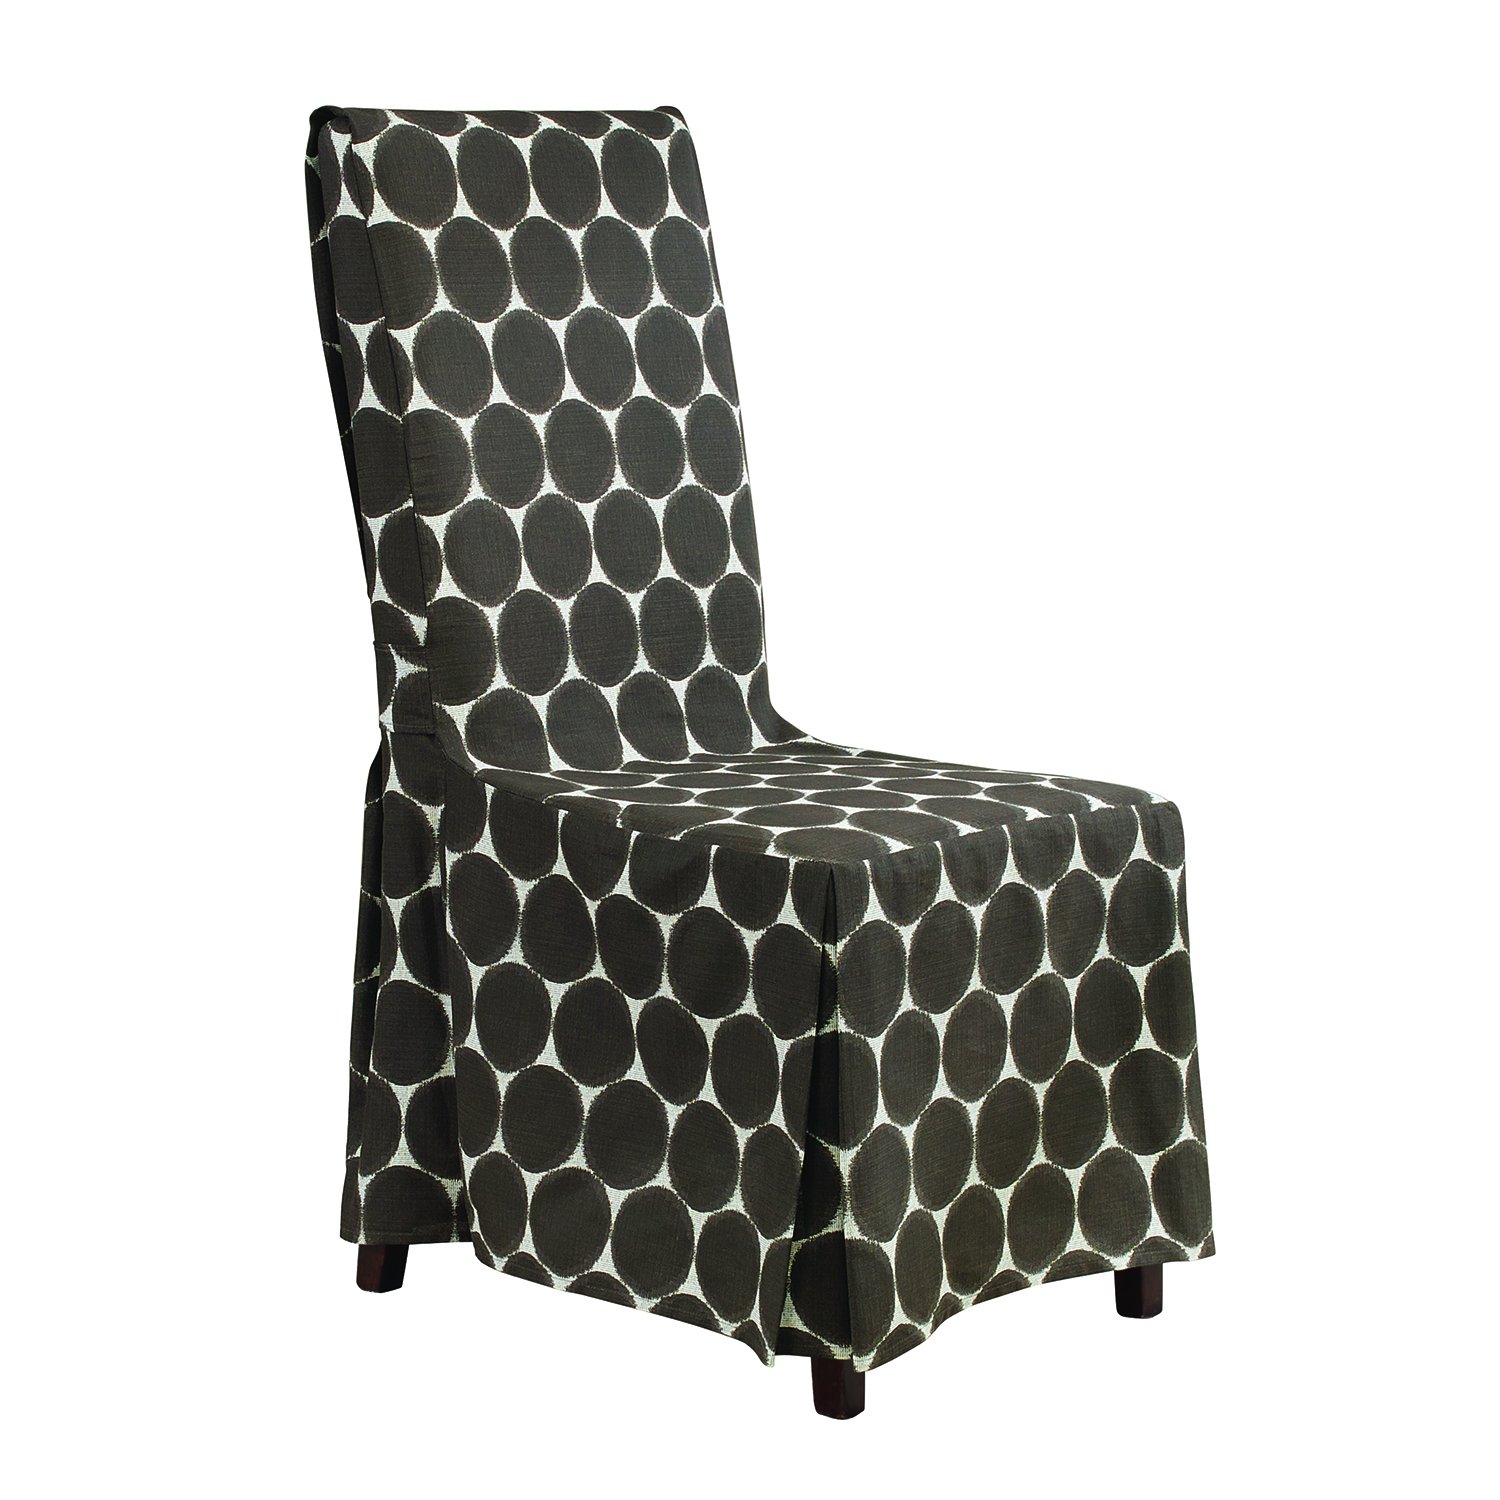 dining long slipcover chair sure matelasse com ip damask walmart fit arm chairs